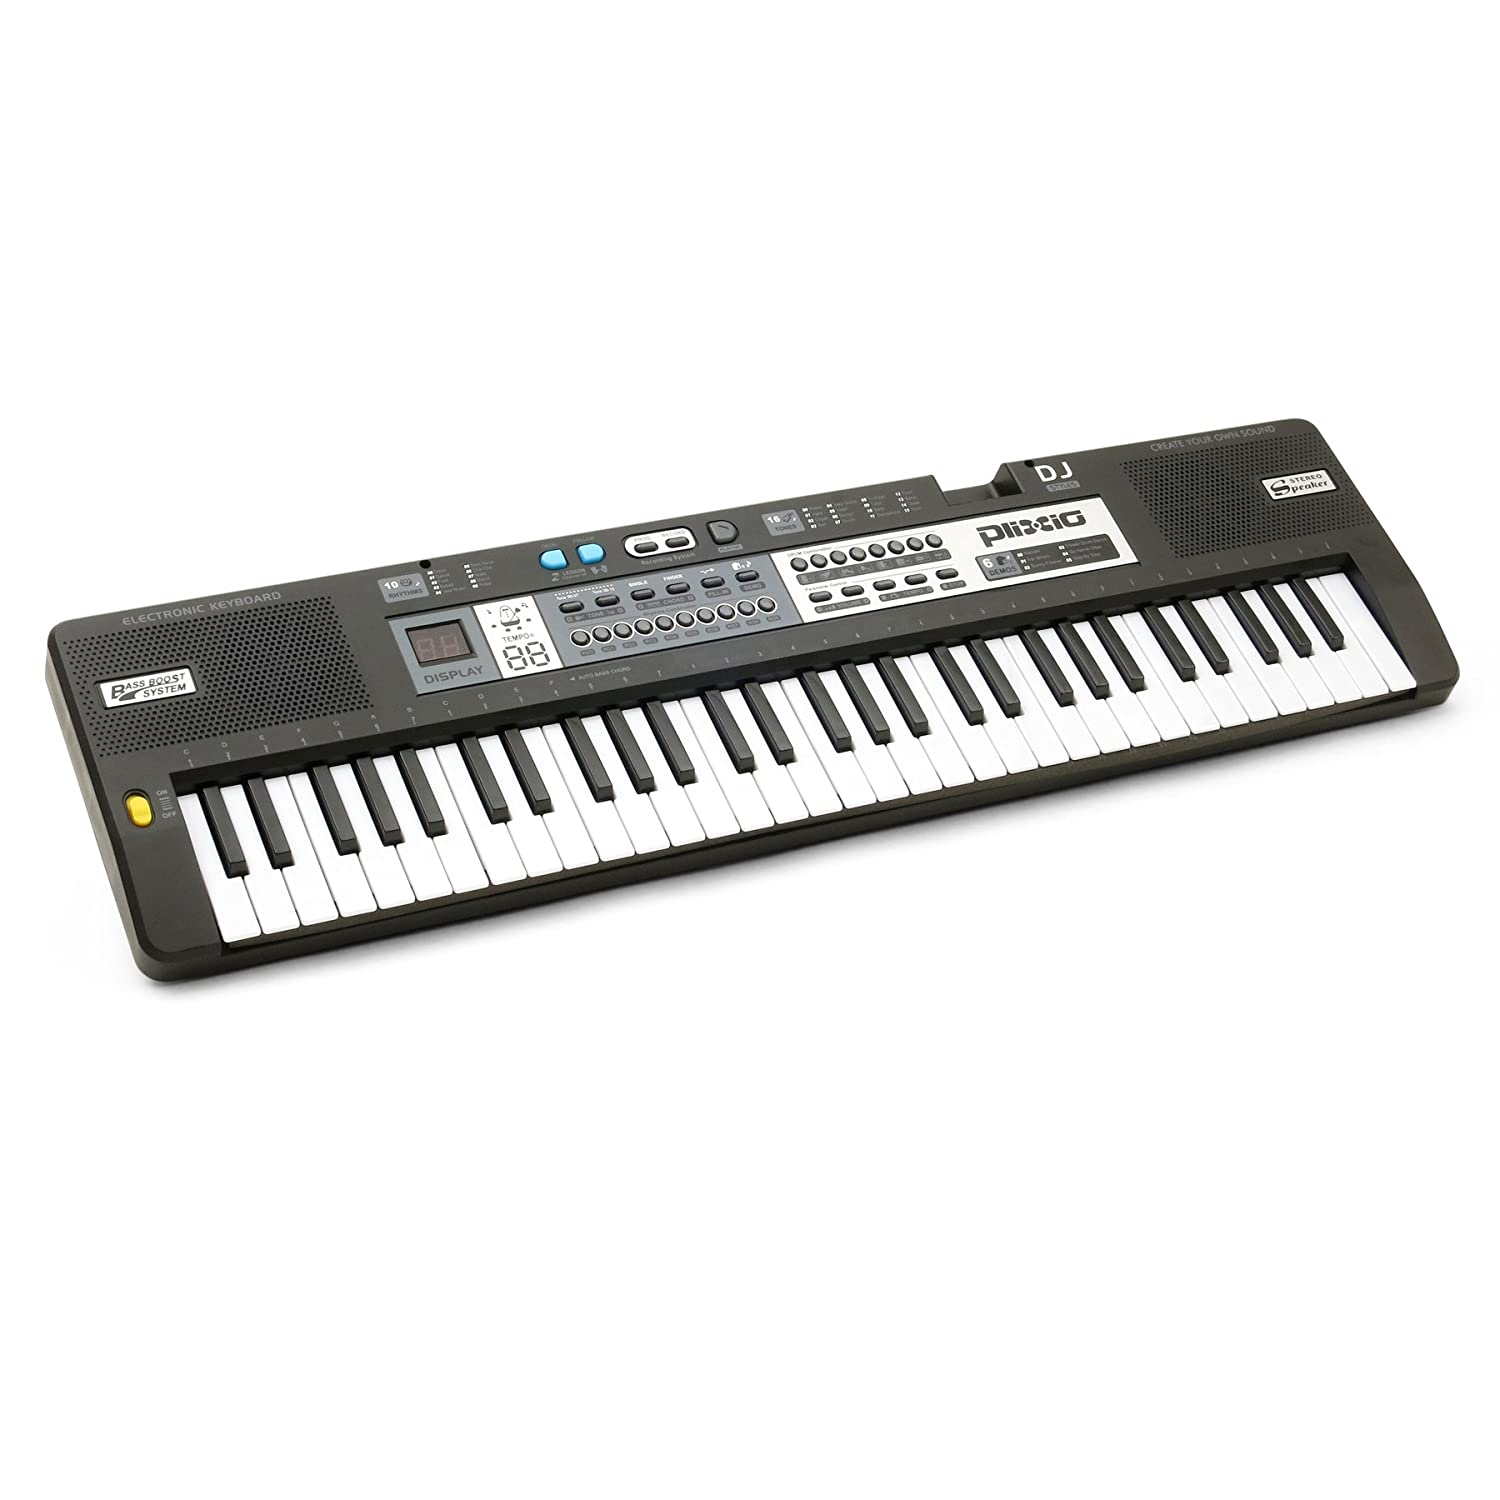 Plixio 61 Key Mid-Size Electric Piano Keyboard with Electronic Music Lesson Mode & Adapter 4334320081